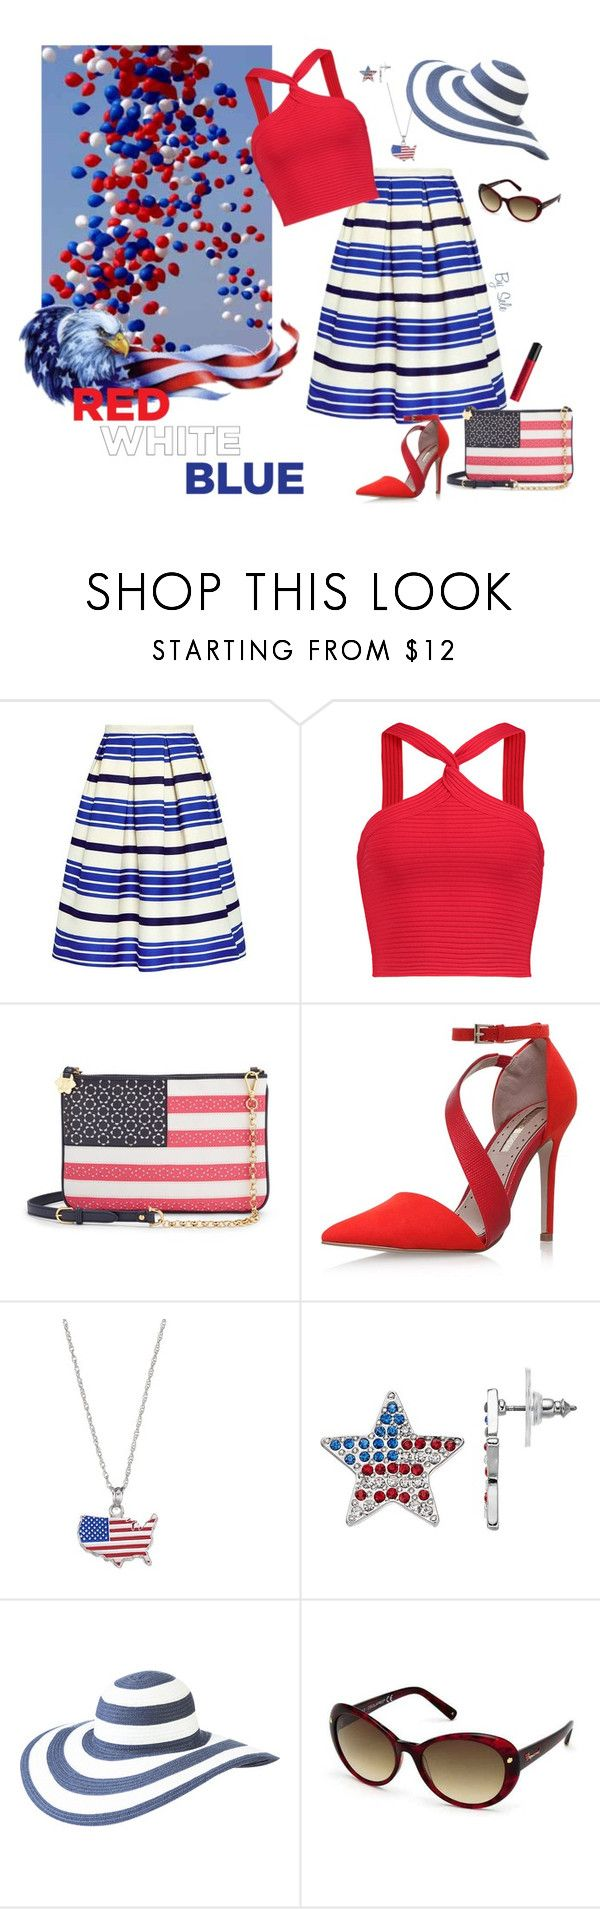 """Red, White & Blue: Celebrate the 4th! - Classic Elegance"" by selene-cinzia ❤ liked on Polyvore featuring Paul & Joe Sister, T By Alexander Wang, Draper James, Miss KG, LogoArt, Columbia, Dsquared2, NYX and fourthofjuly"